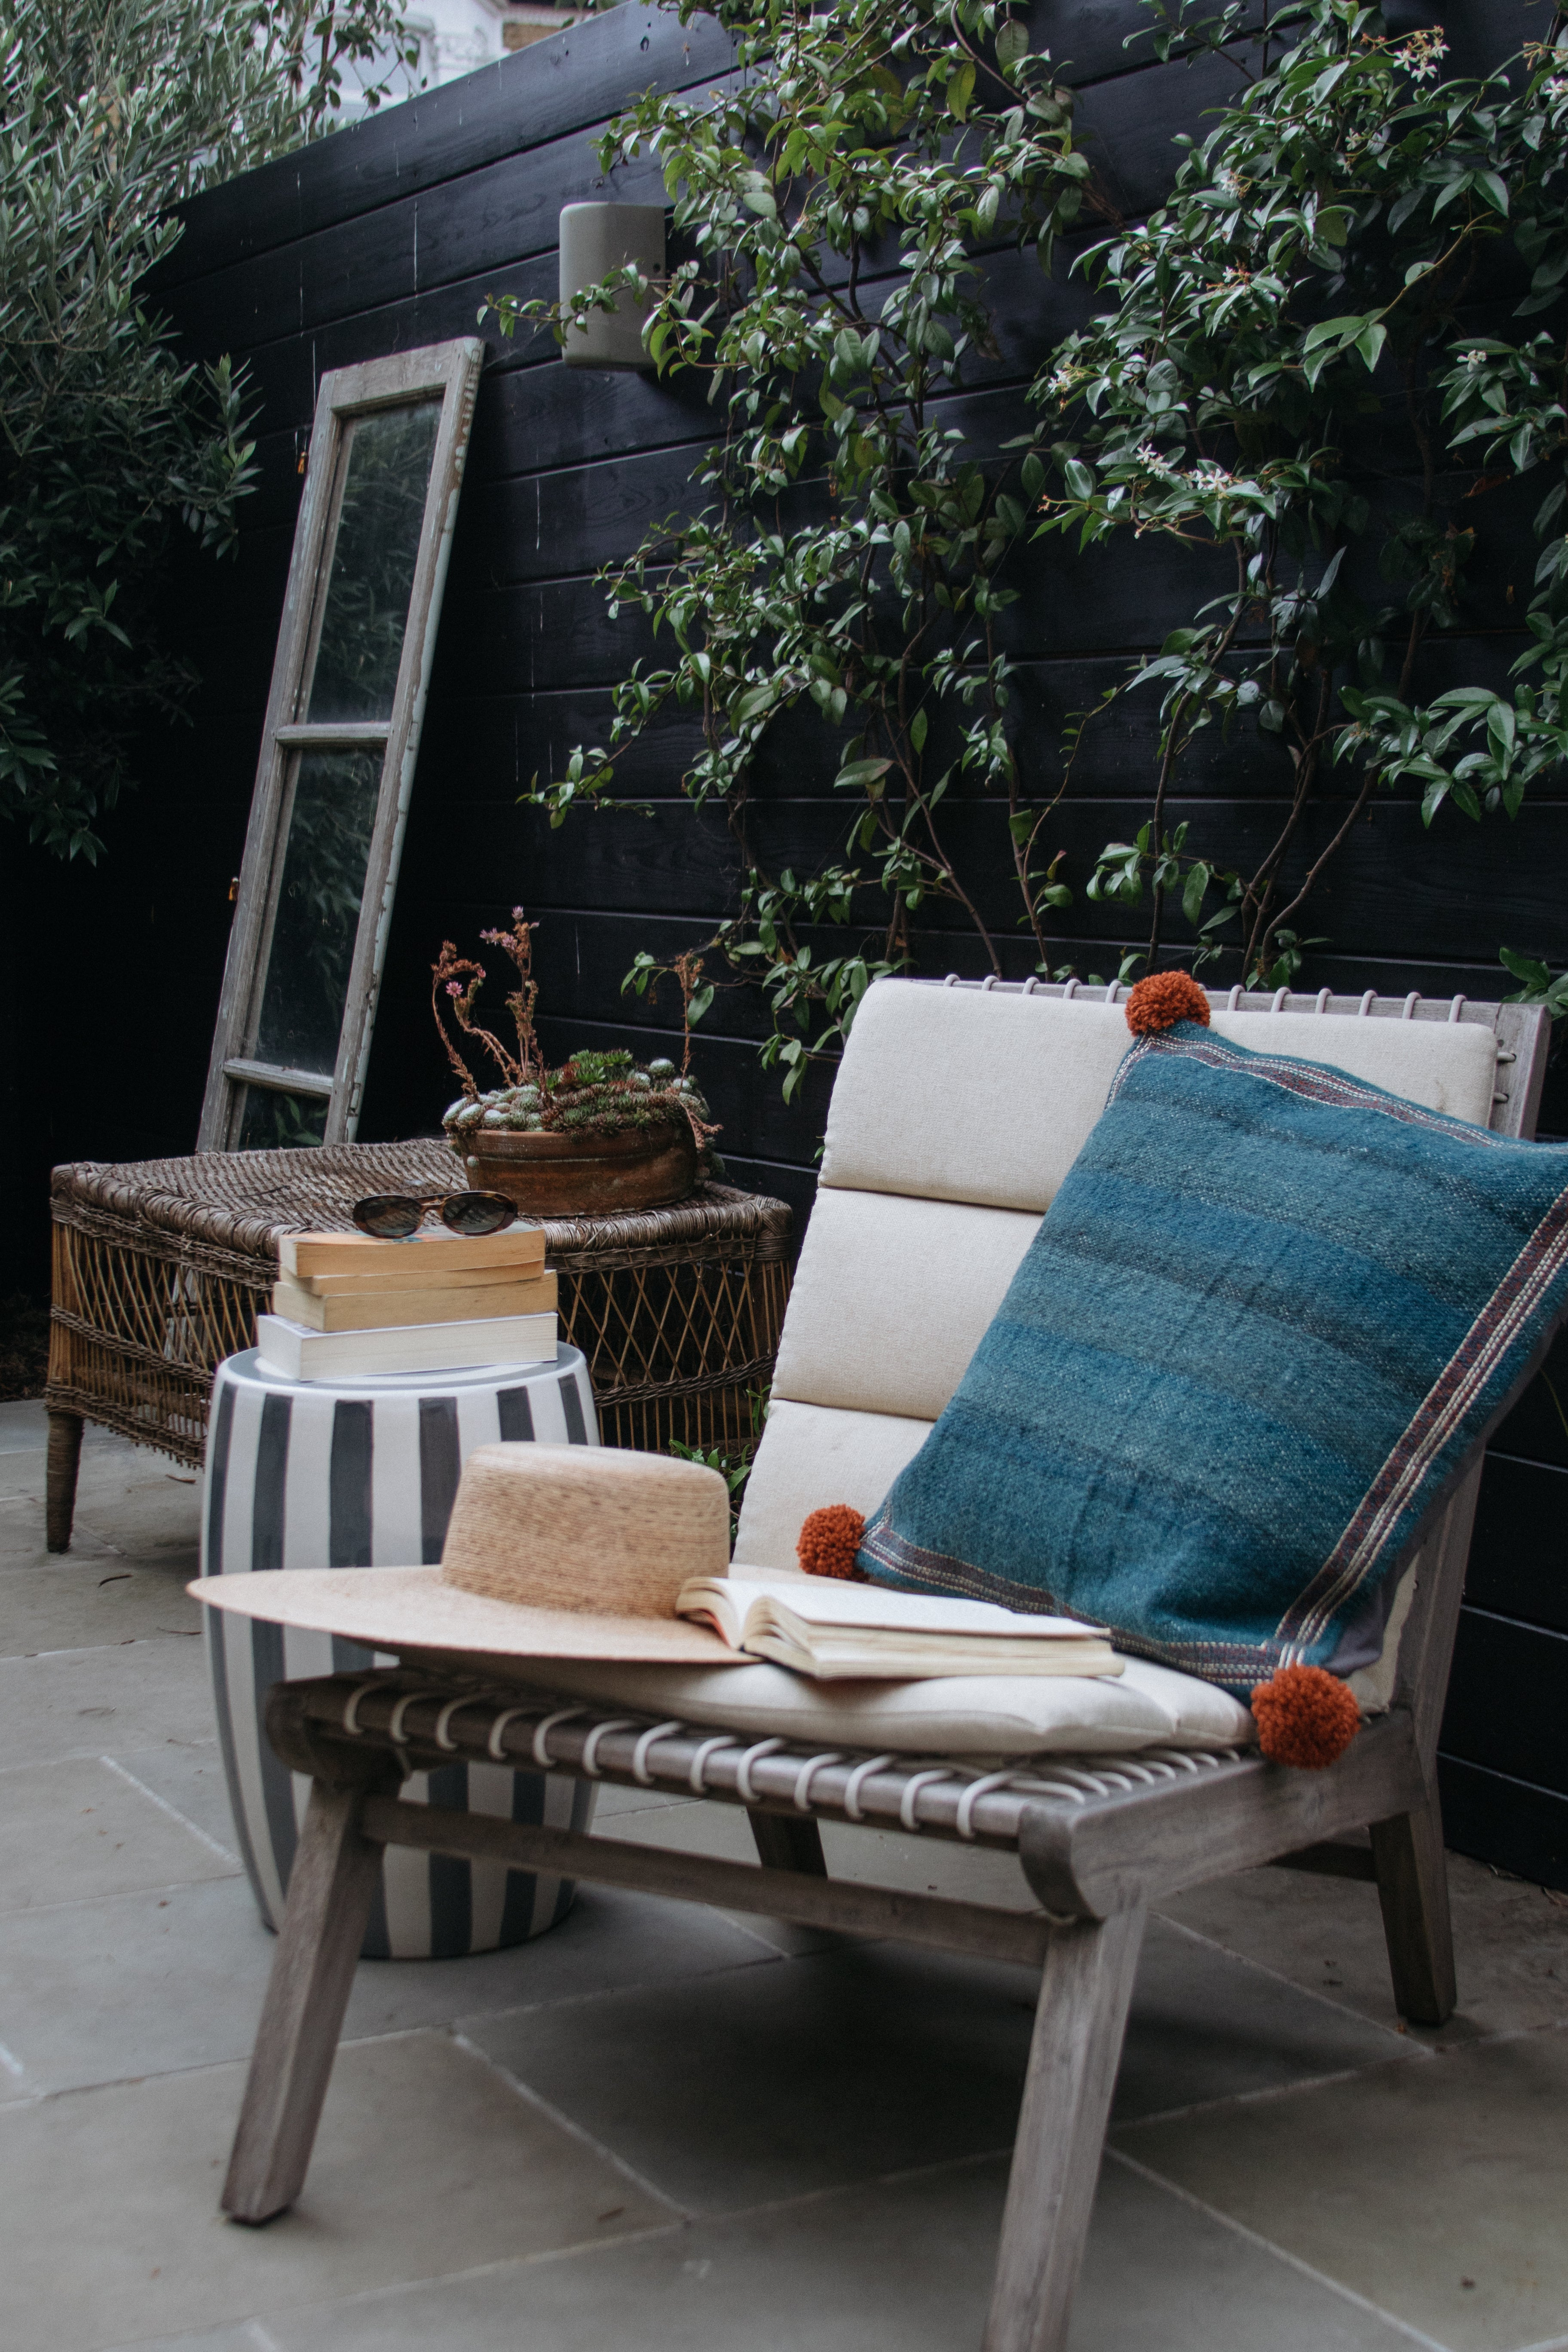 tufted outdoor chair with a denim pillow